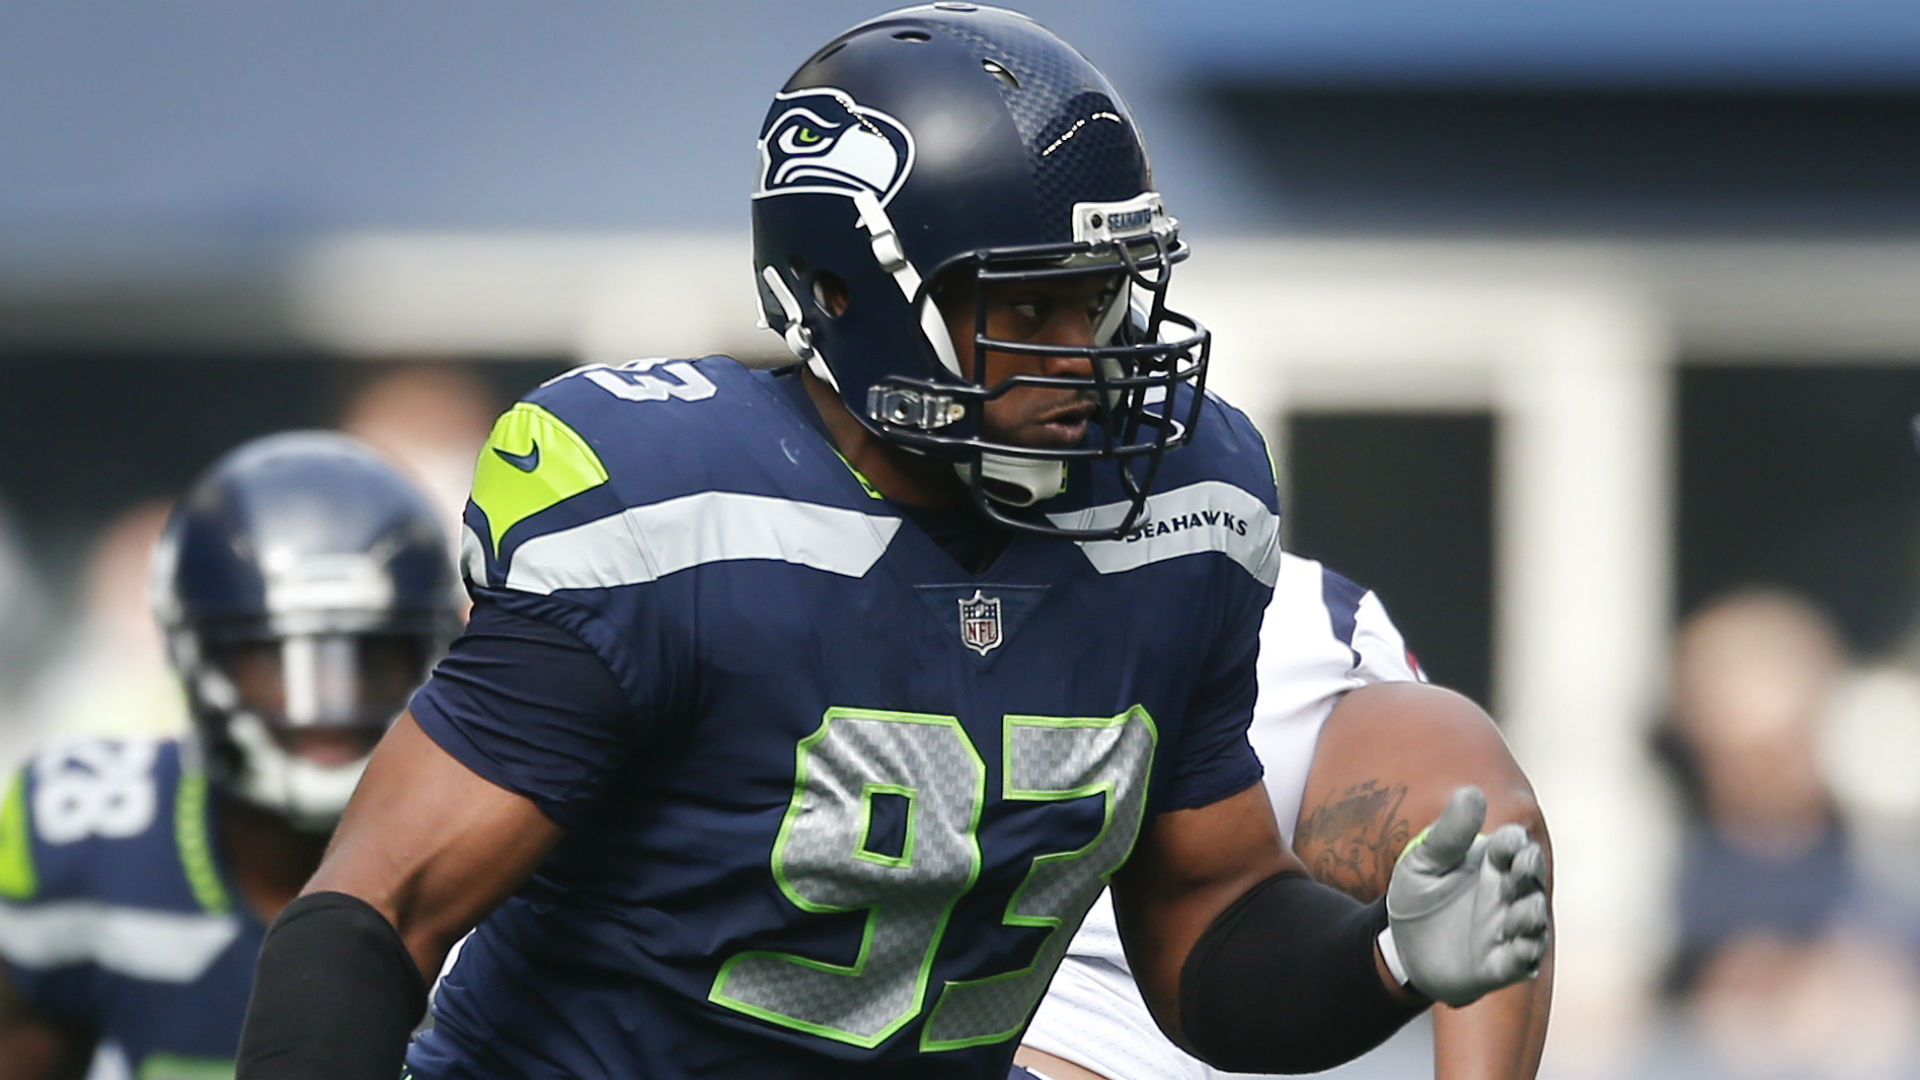 Dwight Freeney 'completely confused' by Seahawks releasing him